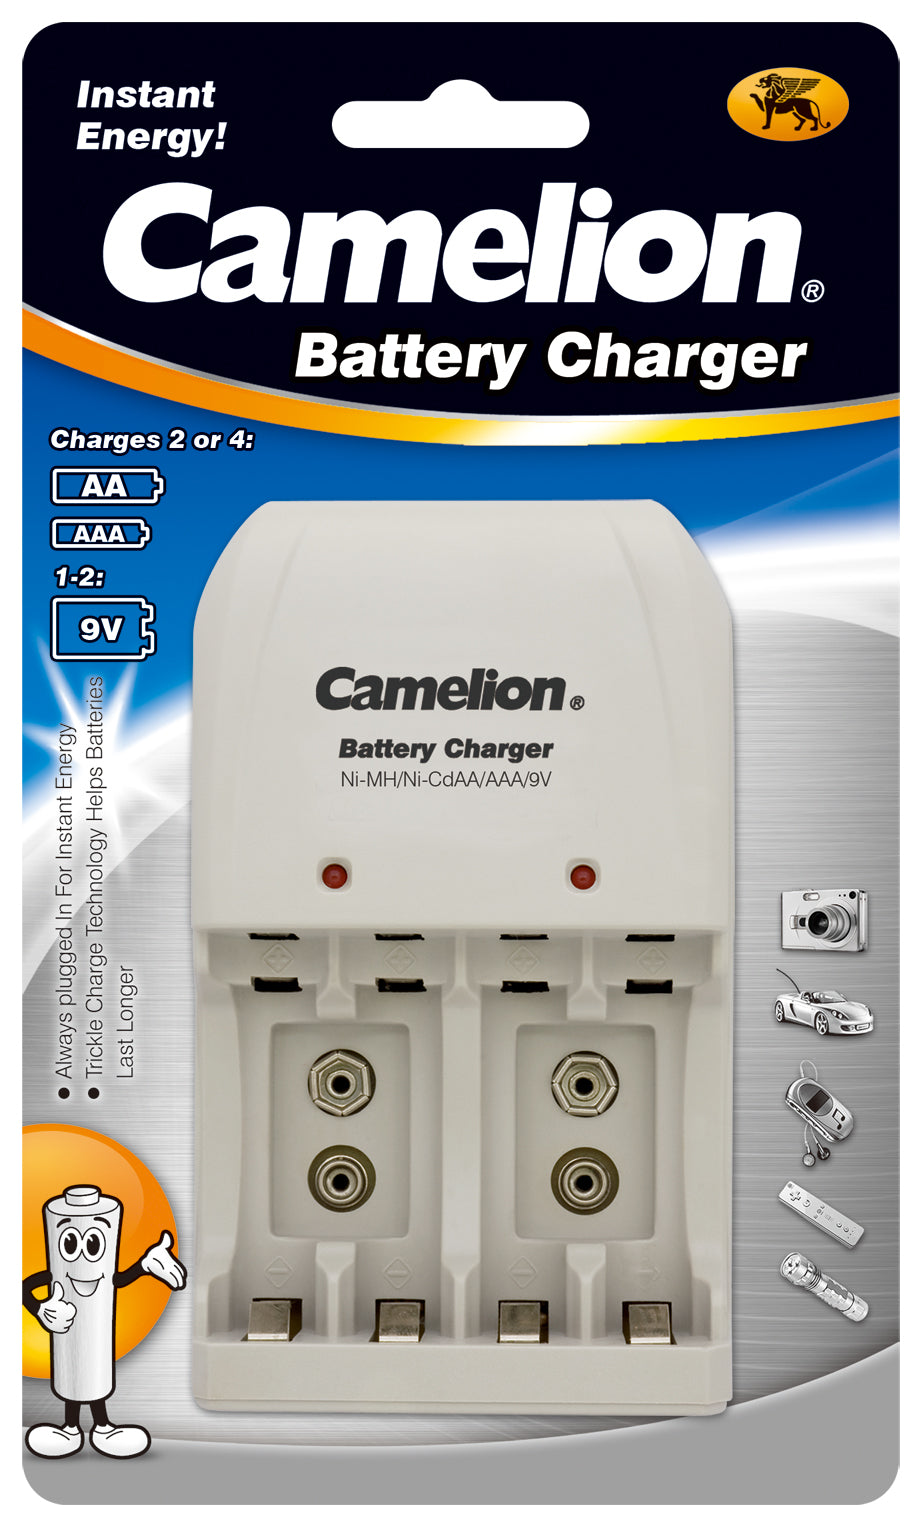 Camelion Overnight Charger AA, AAA & 9V